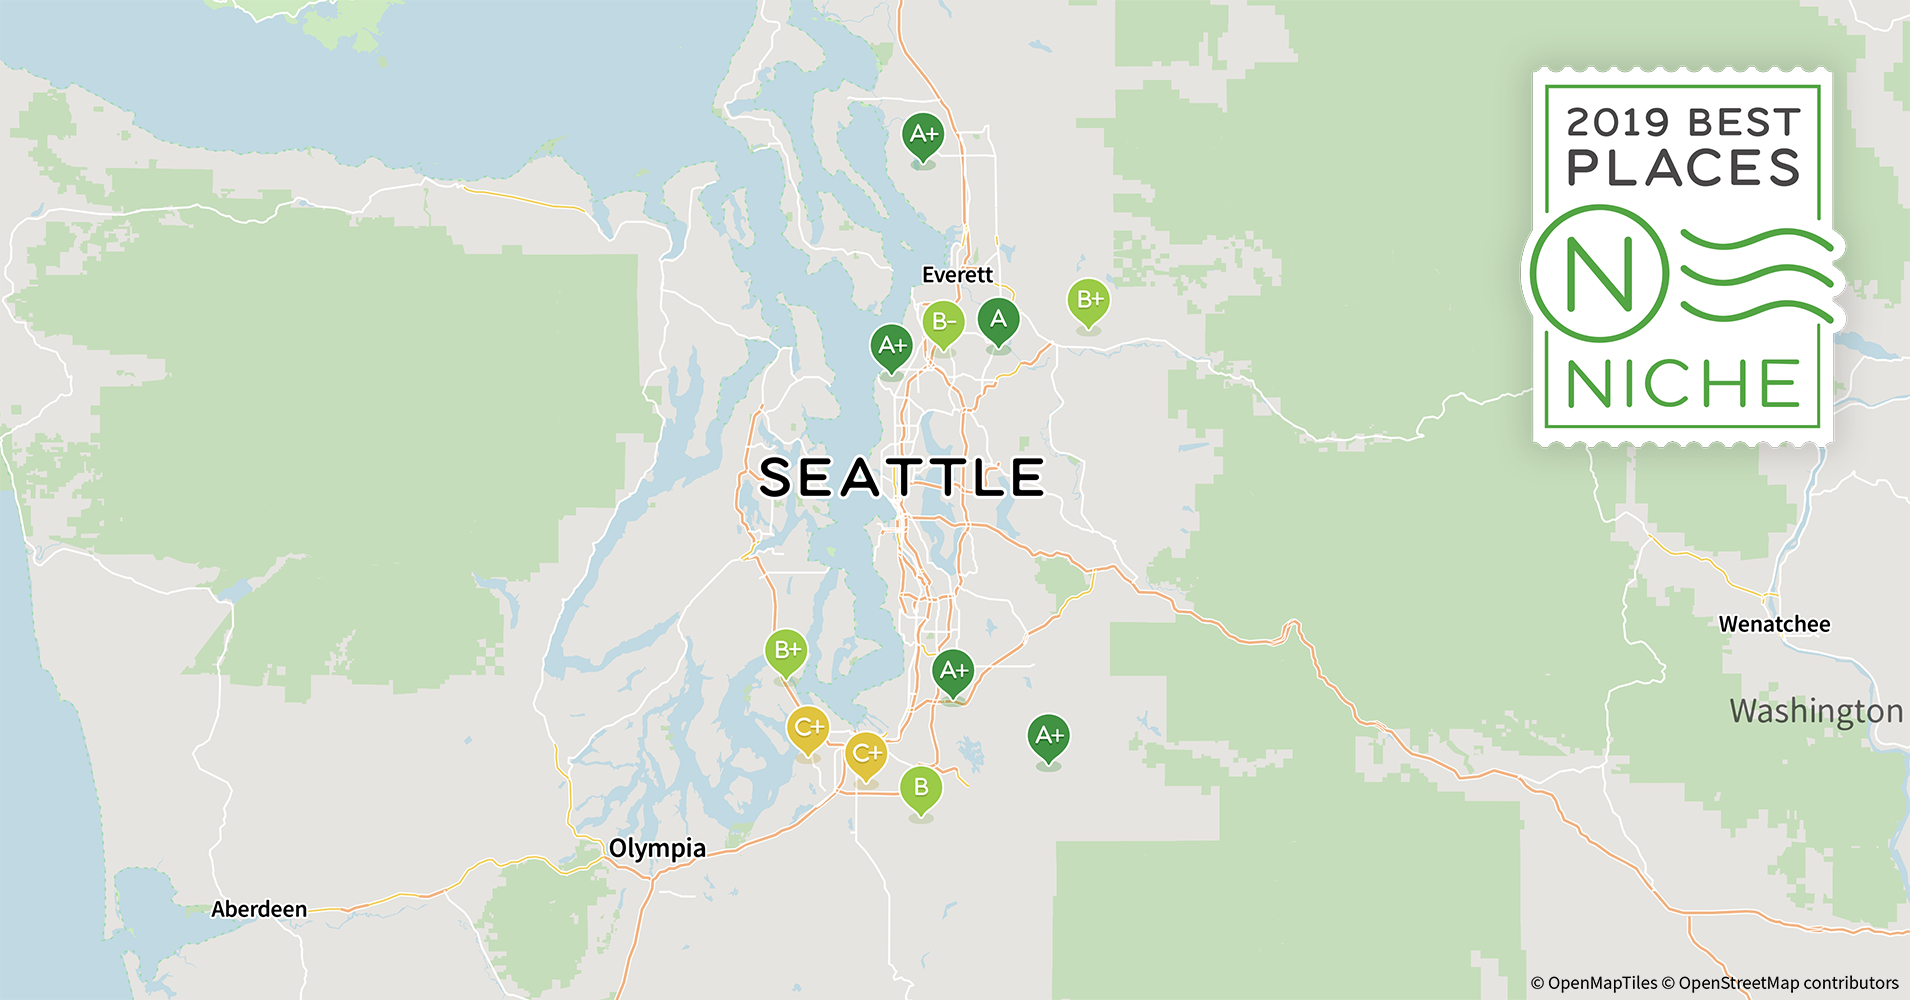 2019 Best Seattle Area Suburbs to Live - Niche